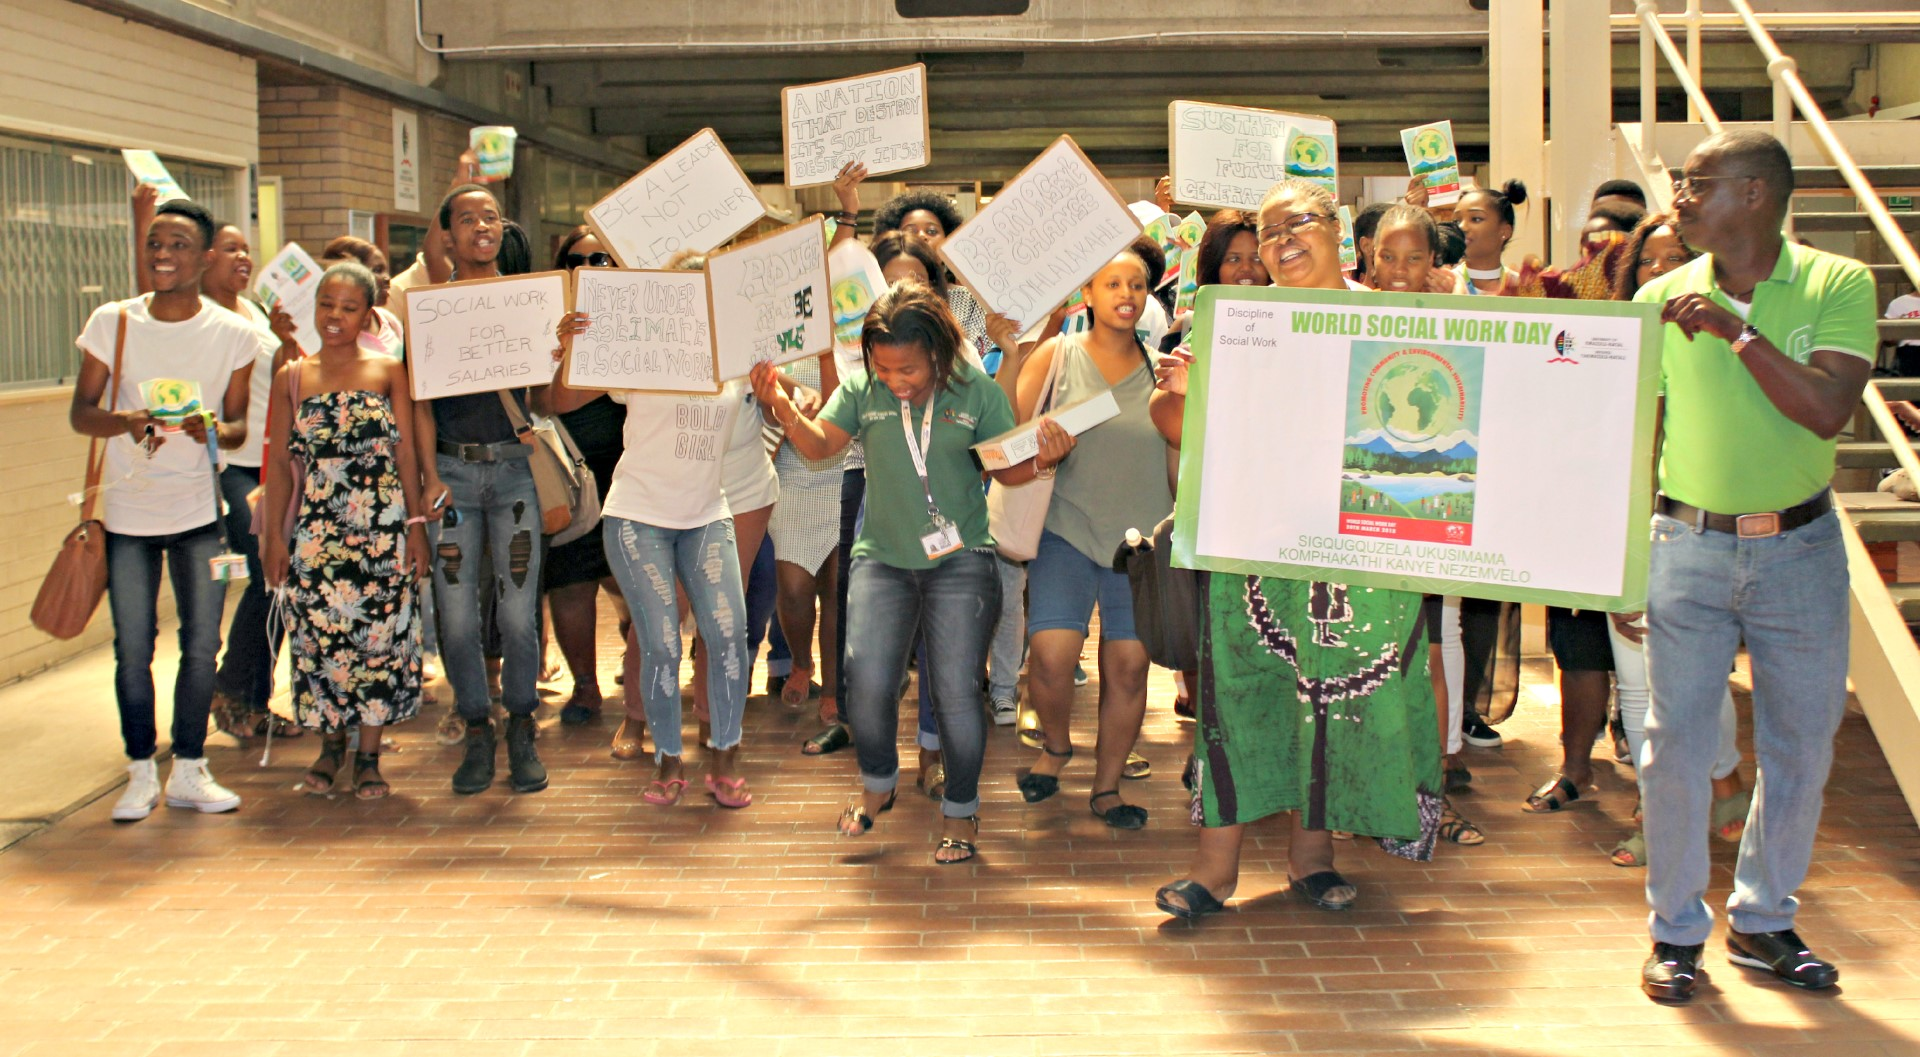 Highlights from World Social Work Day, celebrated by staff and students at UKZN.